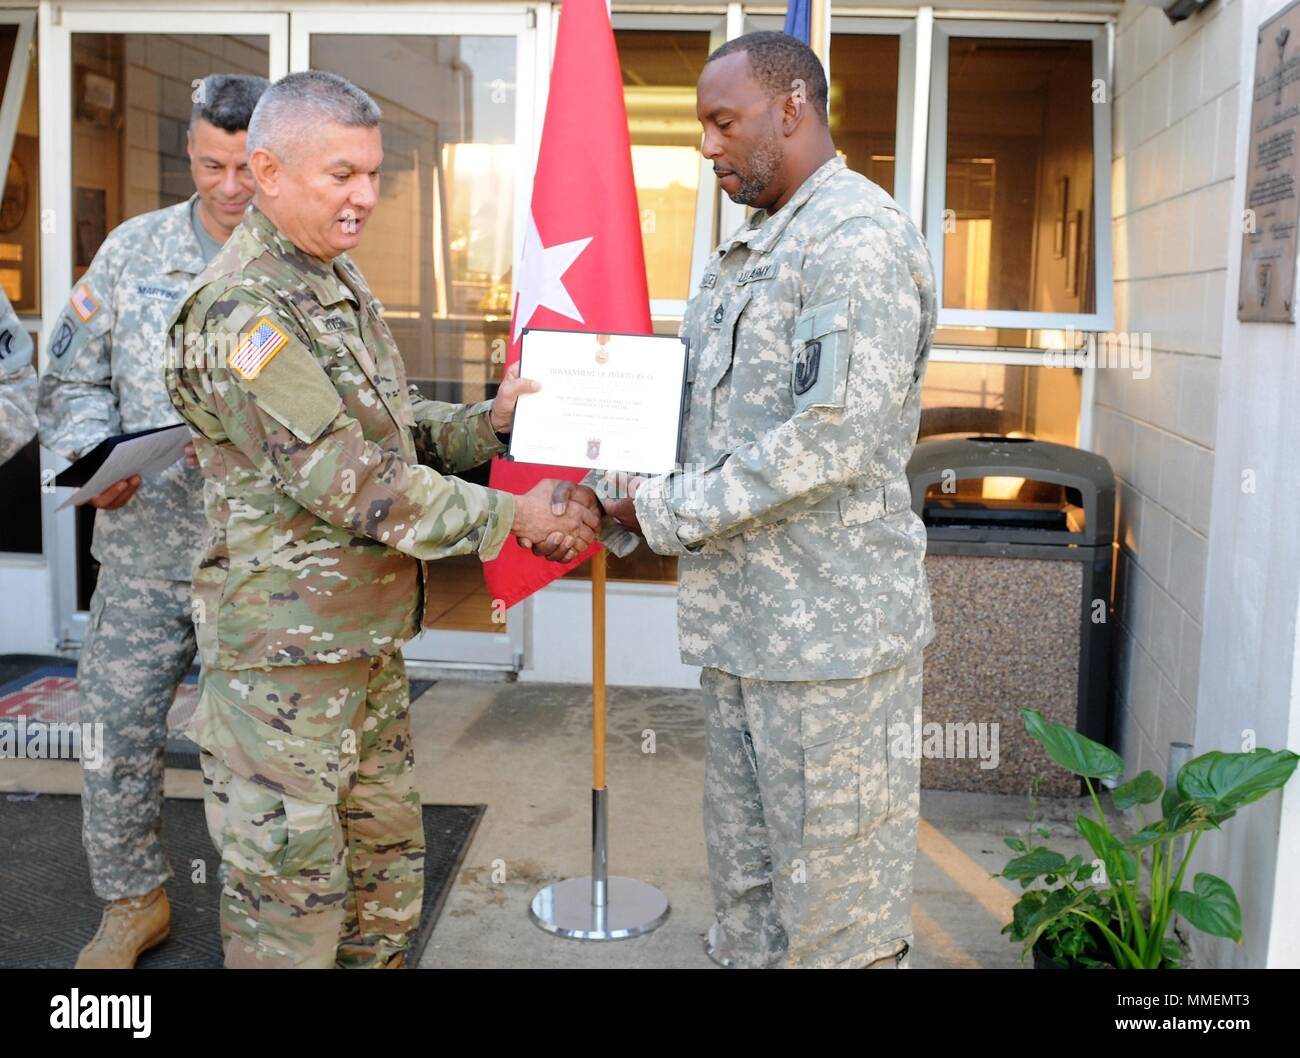 Government of puerto rico to all who shall see these presents government of puerto rico to all who shall see these presents greetings this is to certify that the gorvernor of puerto rico has awarded the puerto rico m4hsunfo